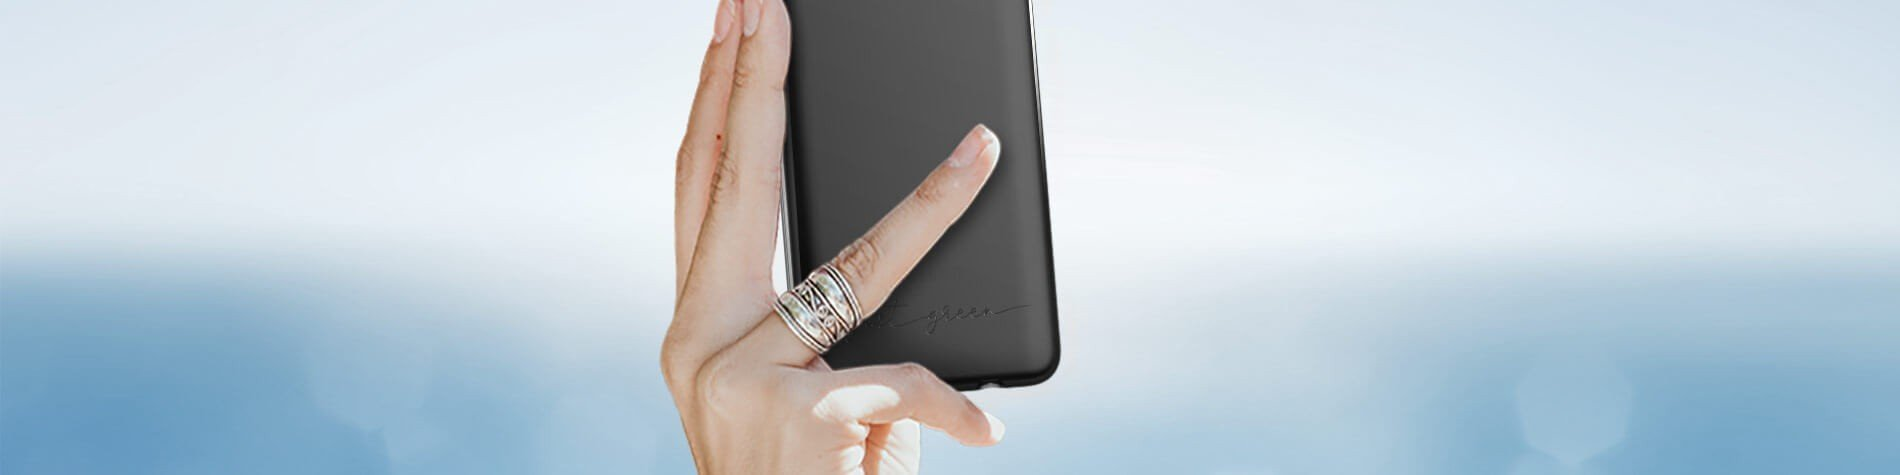 Coque smartphone recyclable : la gamme Just Green